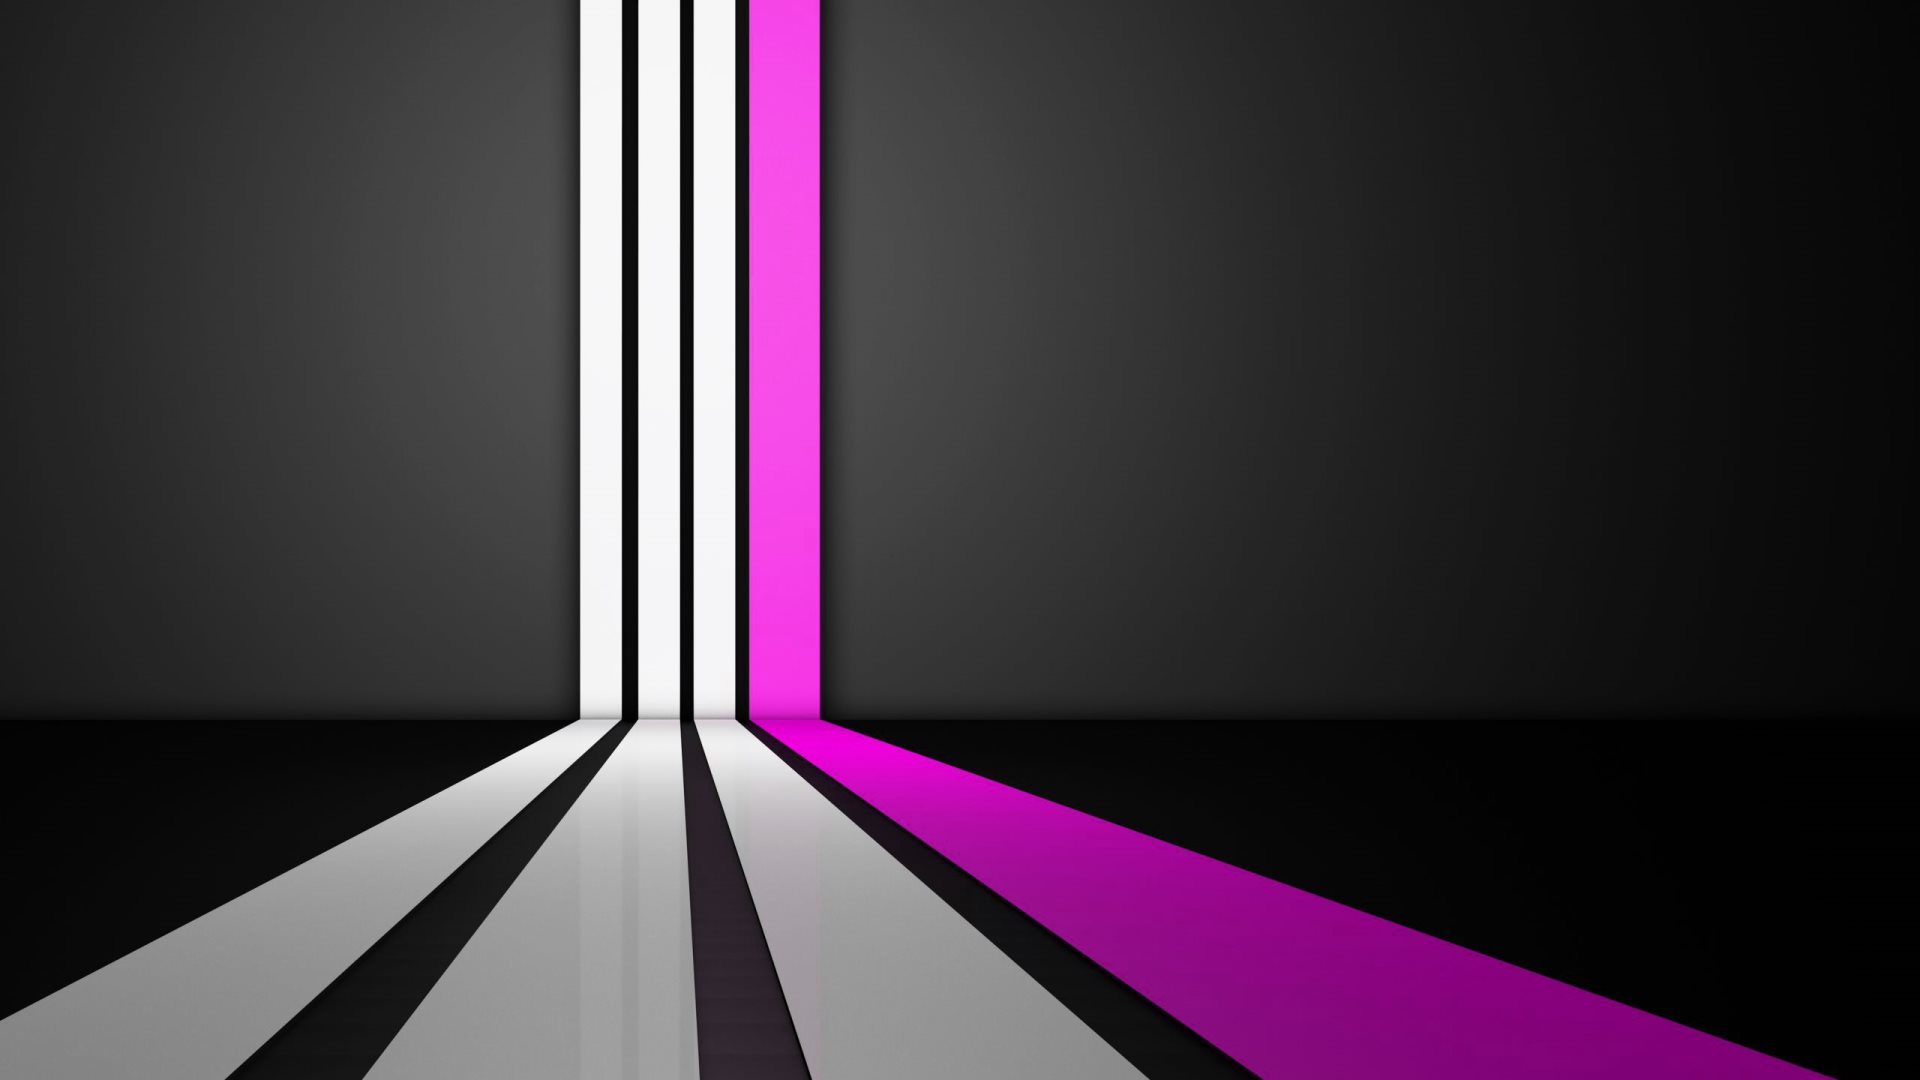 Abstract Graphic Design Purple Wavy Lines Wallpapers HD